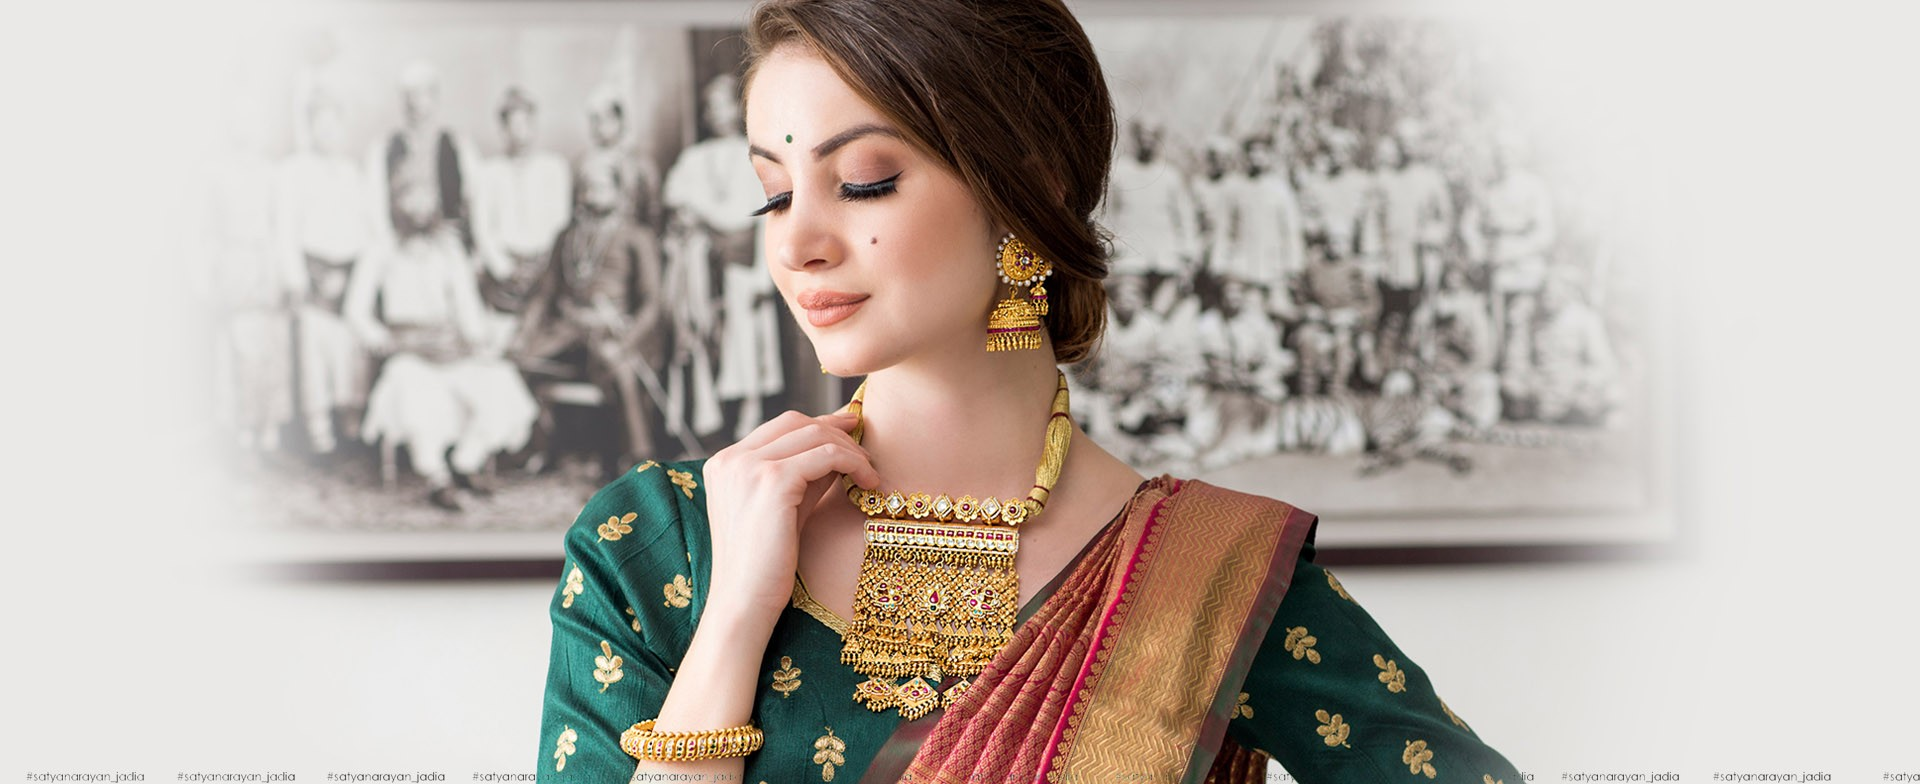 The Traditional Gold Jewellery